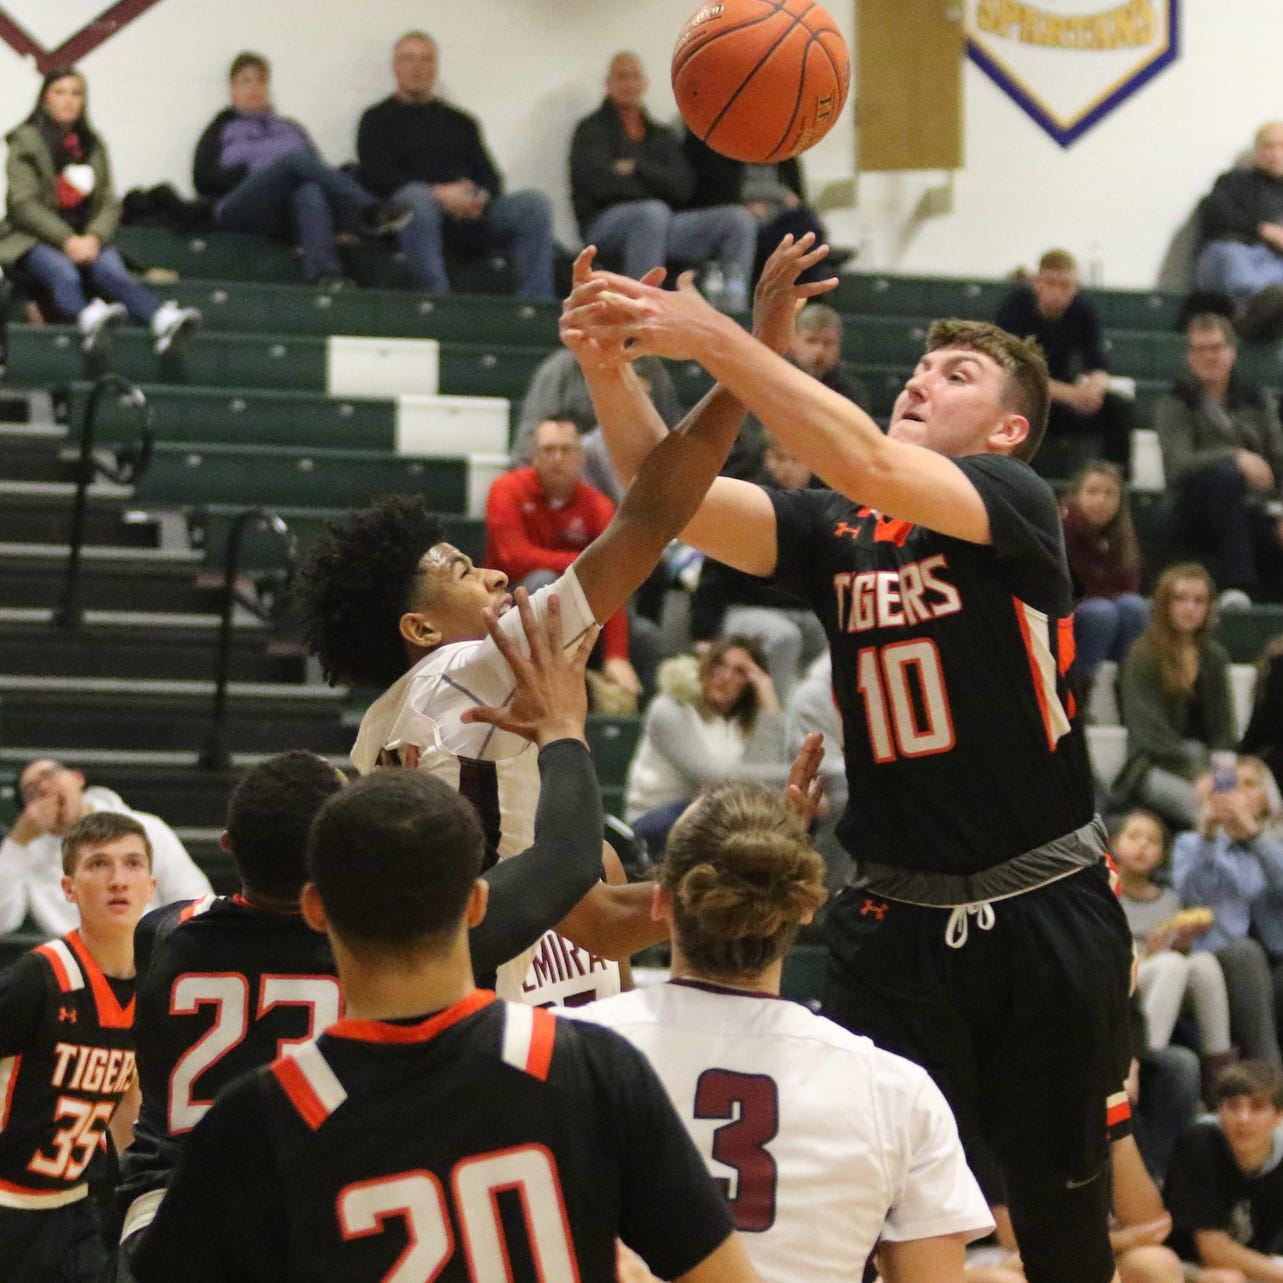 Elmira boys erupt for 34-point quarter, roll past Union-Endicott